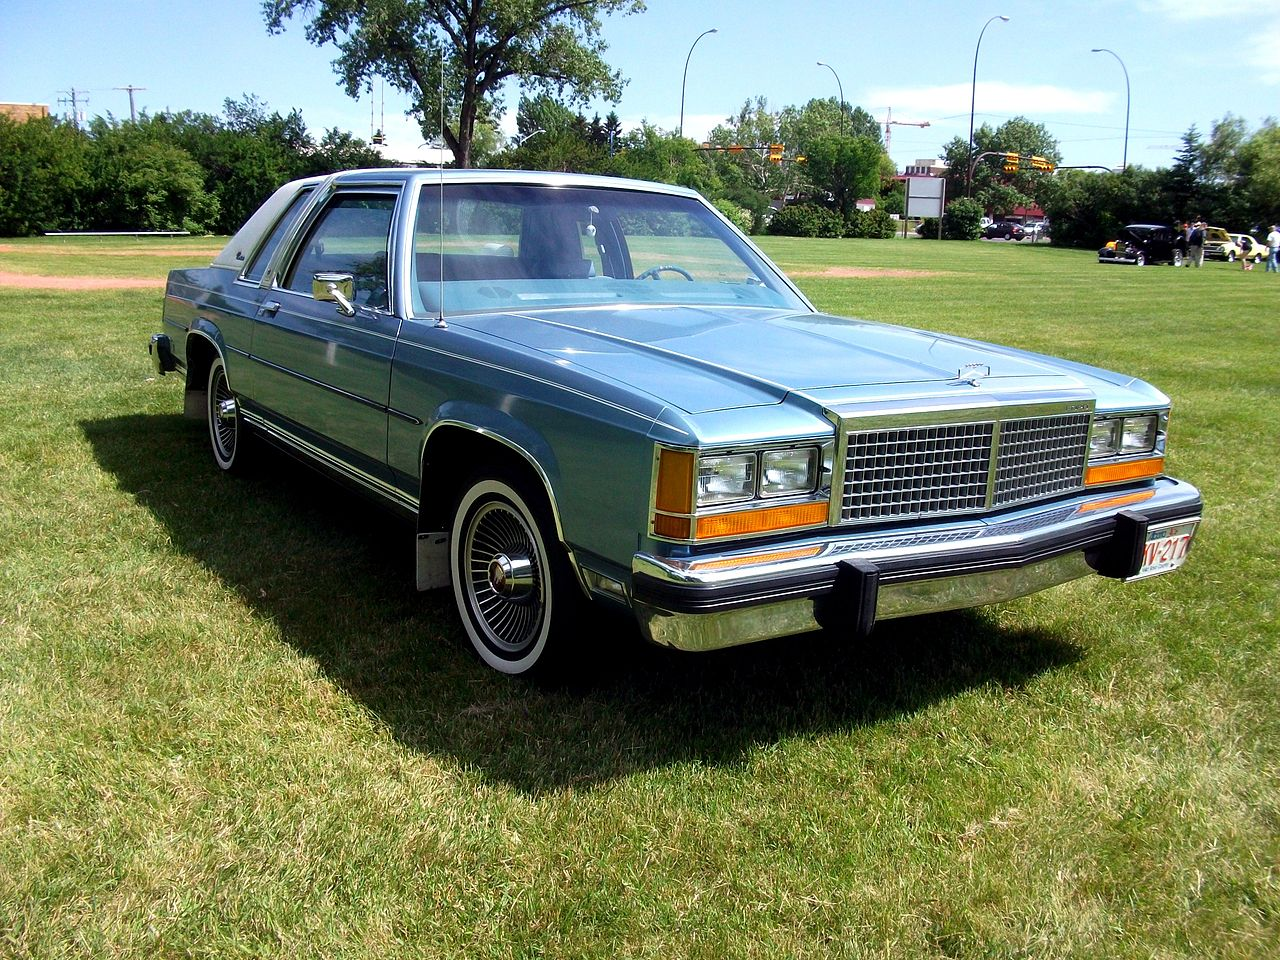 1977 plymouth voyager with File Fordcrownvictoria2door on 1972 Plymouth Fury besides 1975 Plymouth Volare besides 1969 Plymouth Road Runner Overview C9354 in addition Junkyard Find 1993 Dodge Dynasty likewise 1977 Corvette Tracer Schematic.